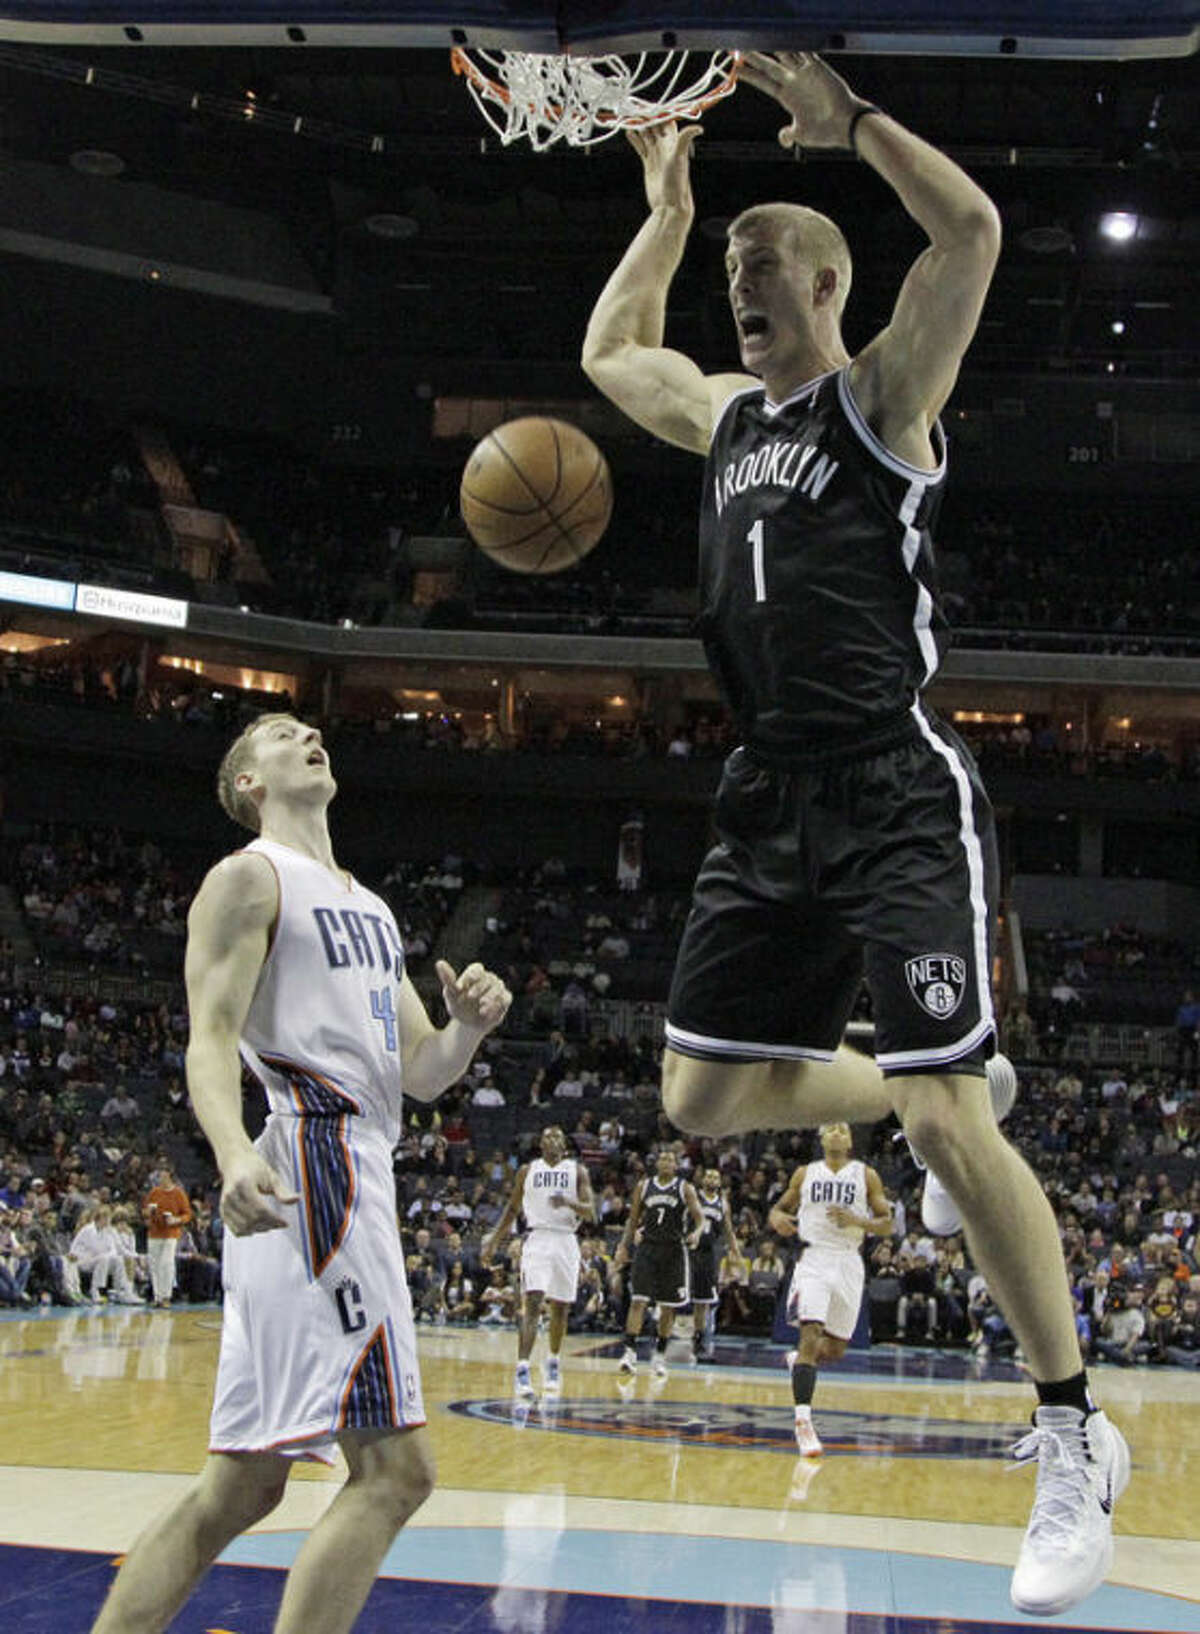 Brooklyn Nets' Mason Plumlee (1) dunks as Charlotte Bobcats' Cody Zeller stands by during the first half of an NBA basketball game in Charlotte, N.C., Wednesday, Nov. 20, 2013. (AP Photo/Chuck Burton)